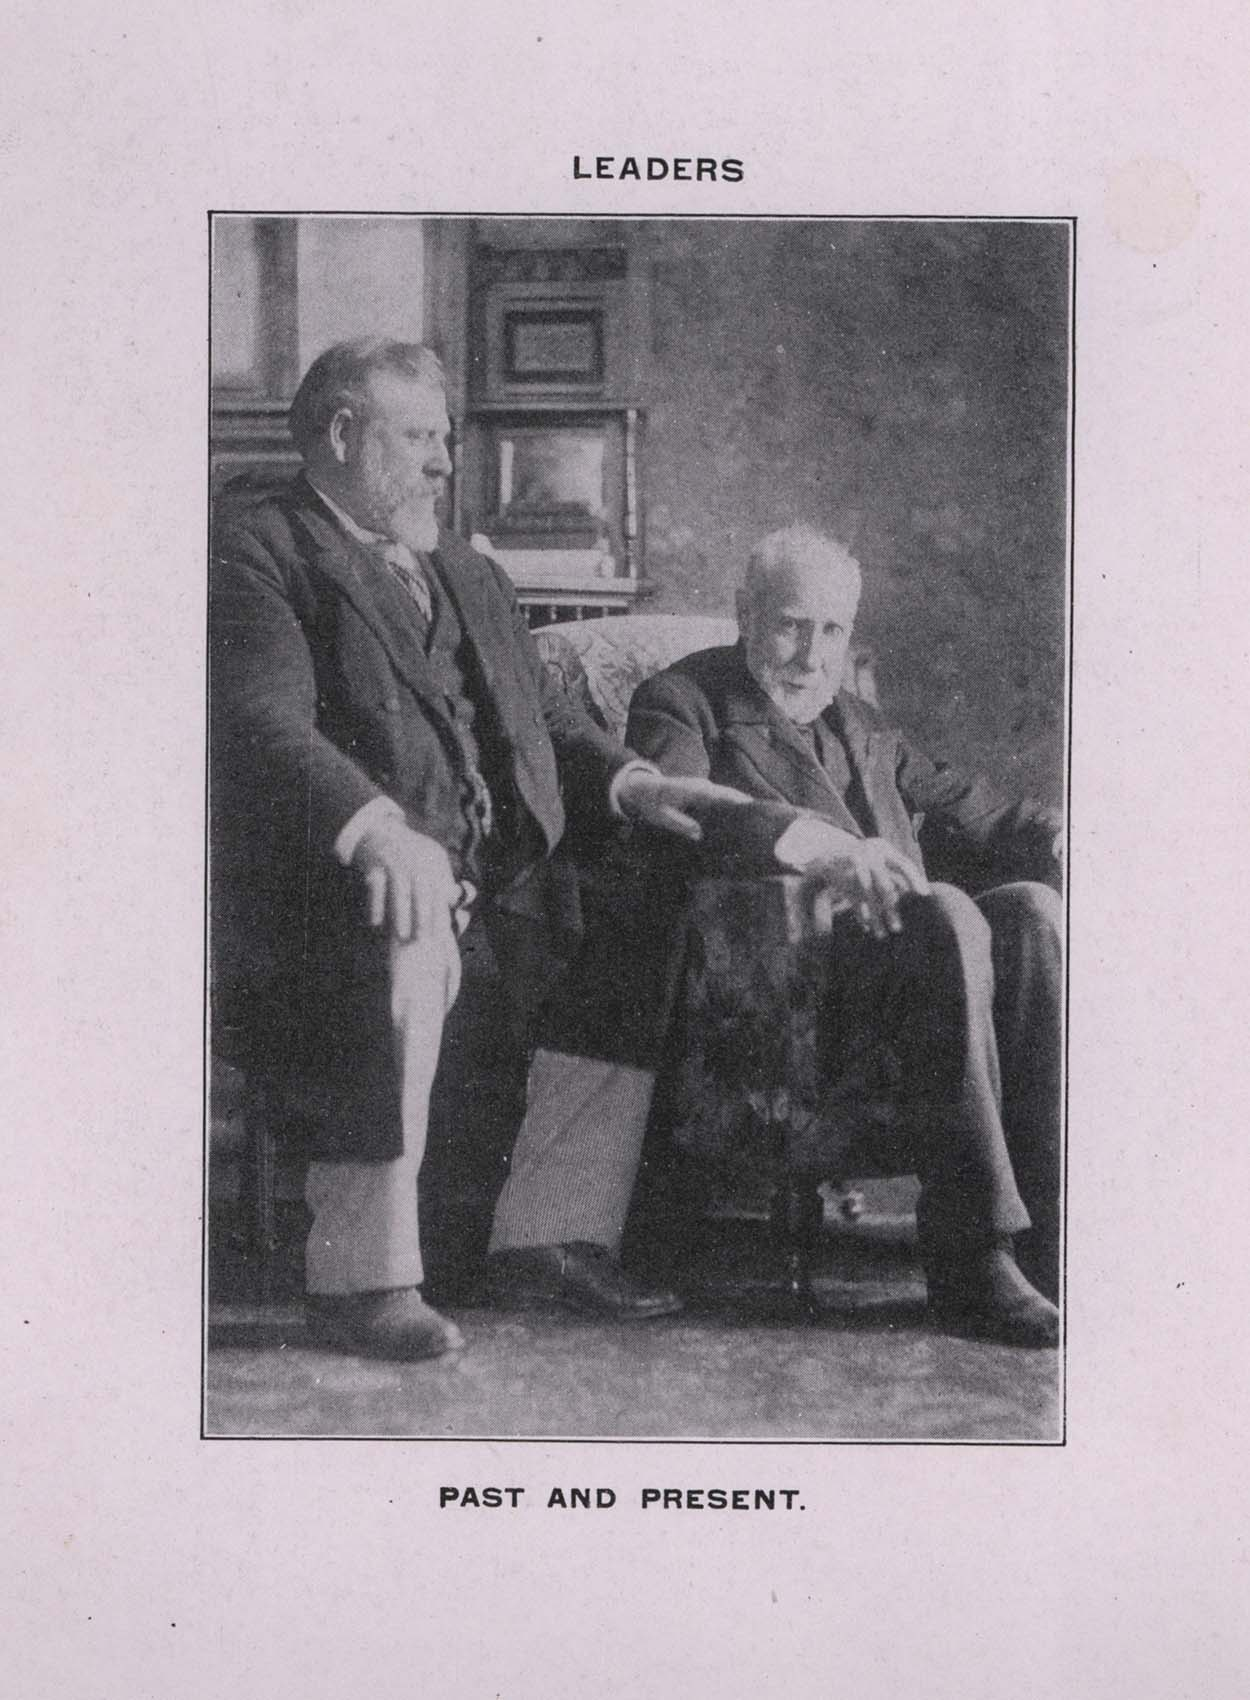 A black and white photo showing Richard Seddon and Julius Vogel